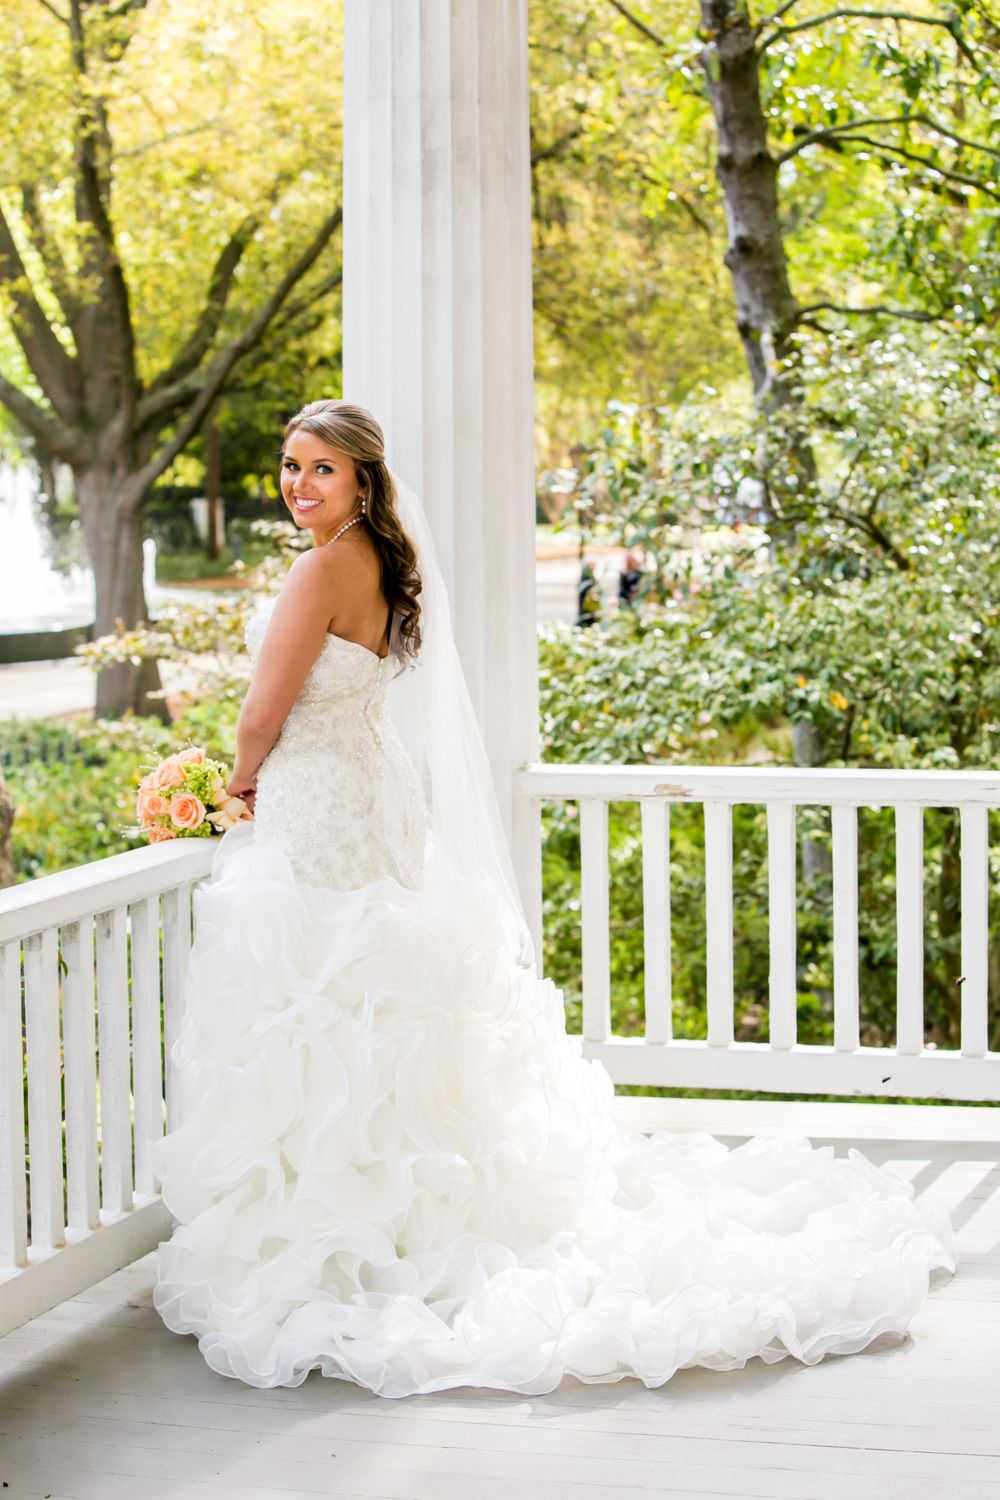 Bride Angela poses on the porch of the Caldwell-Boylston House at the SC Lace House in Columbia, SC